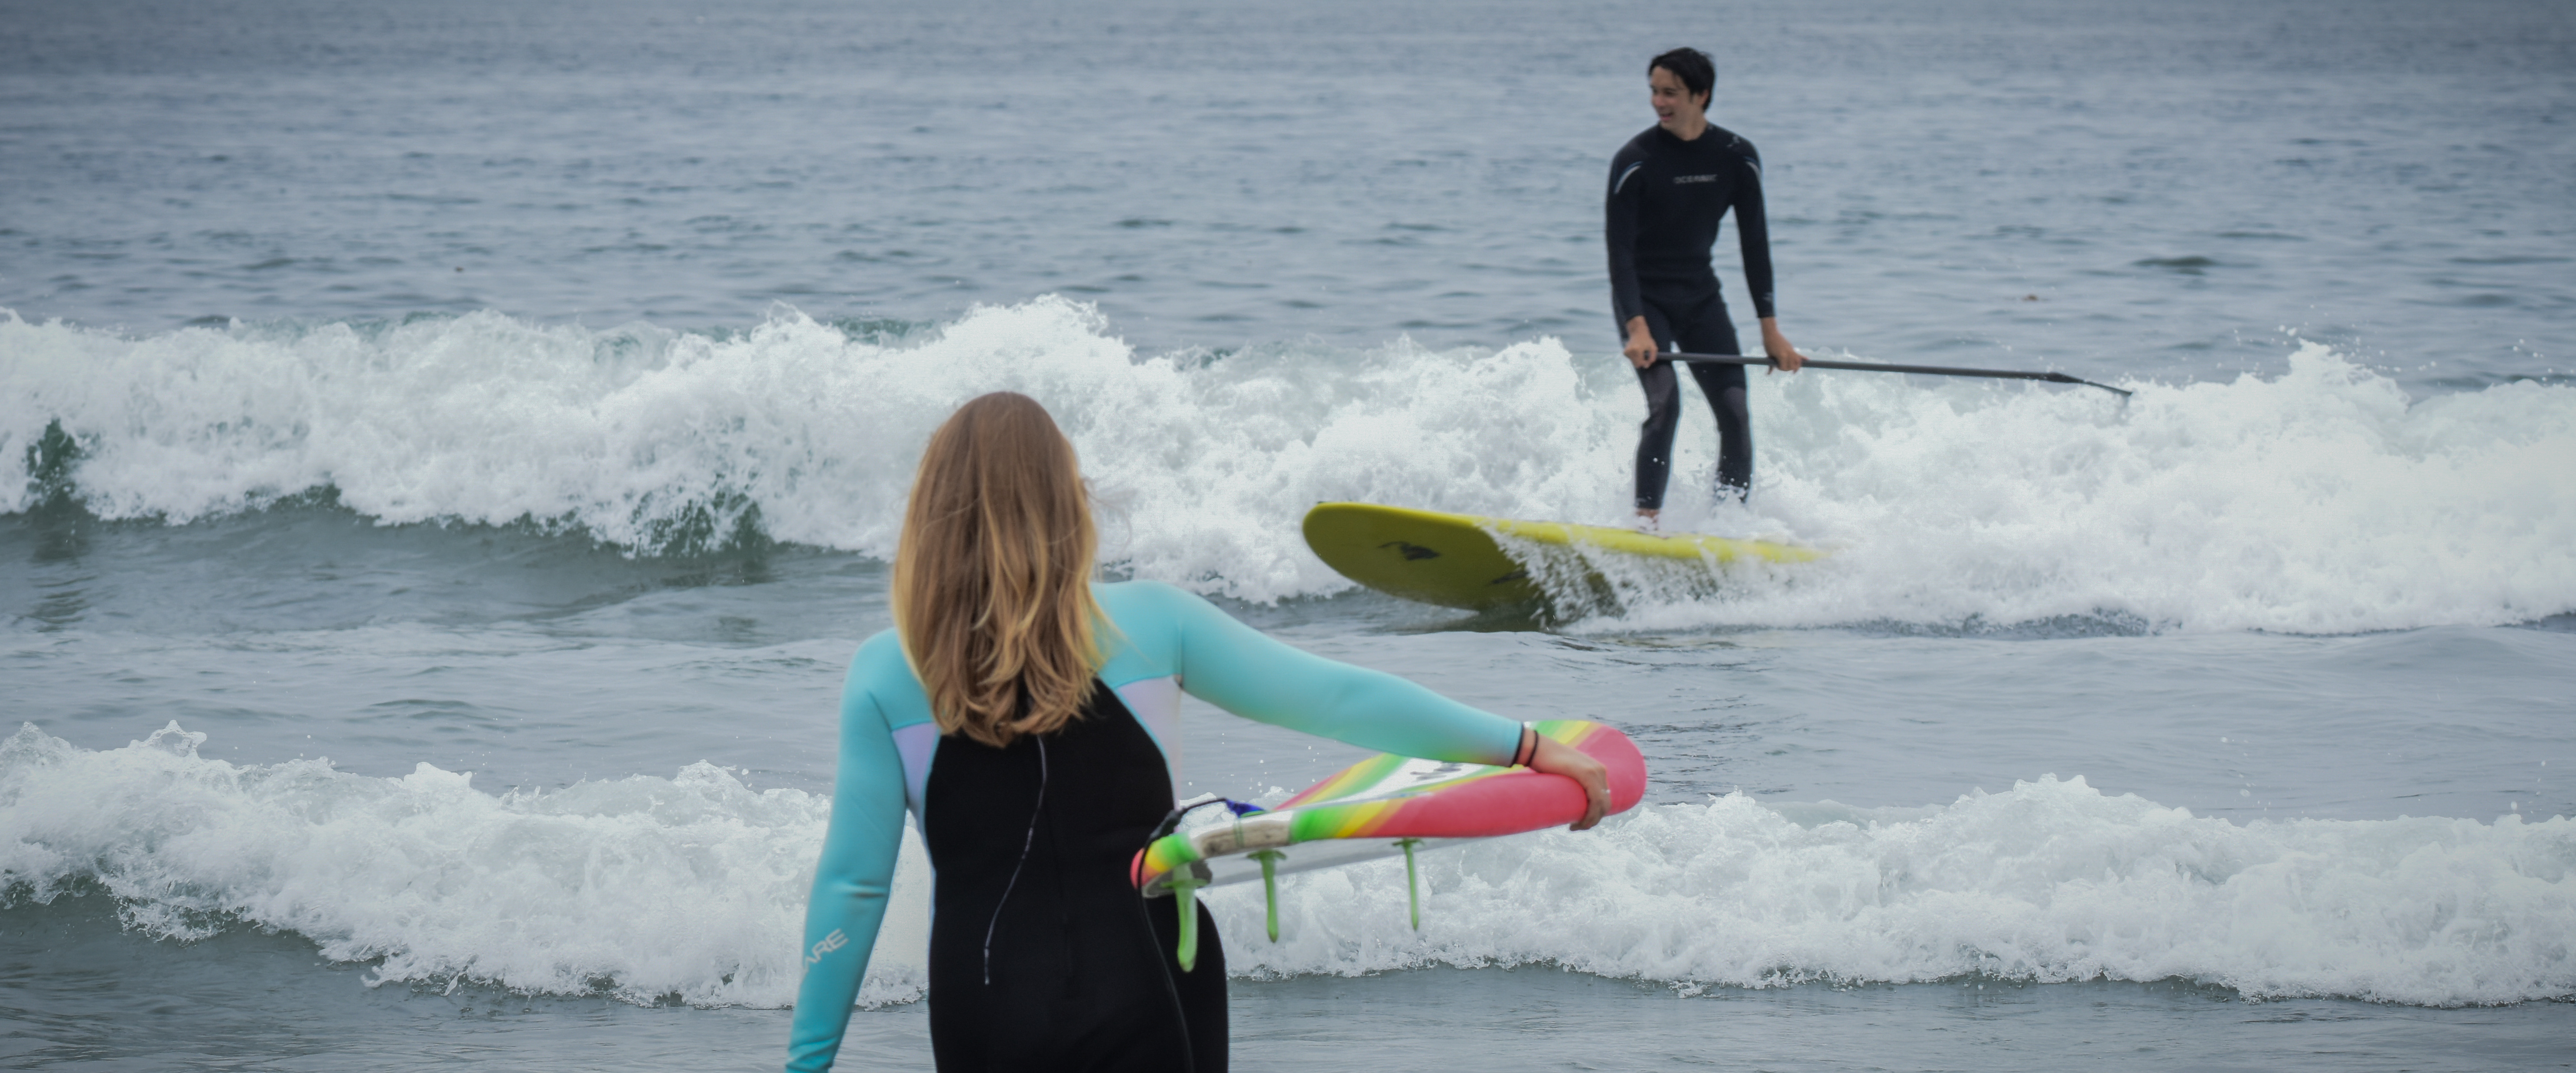 Surfer girl walks into the water carrying a surfboard, while a young man surfs a paddle board on a wave.